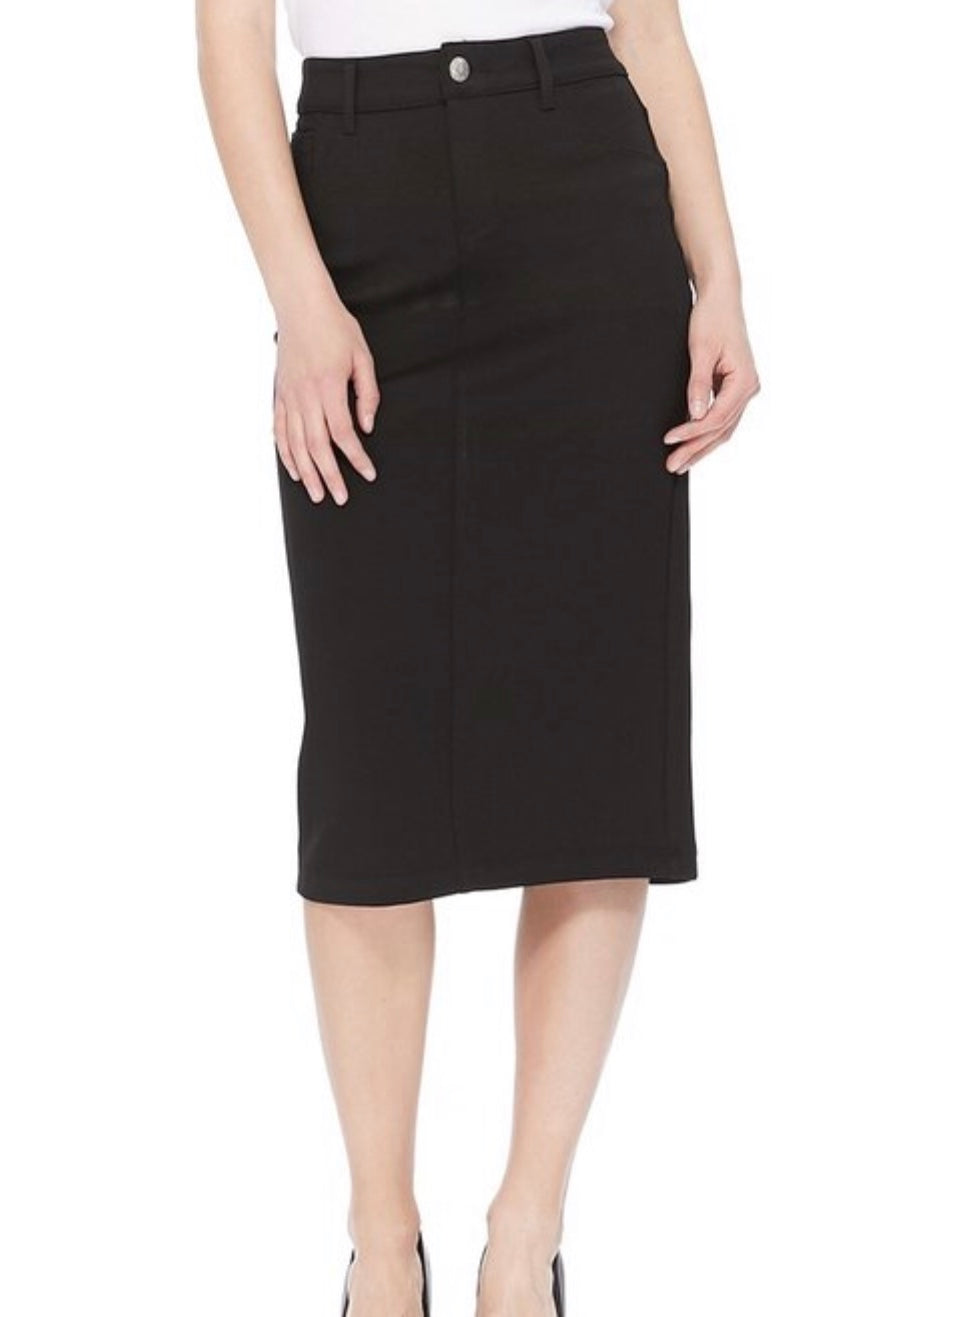 Mid Calf Black Skirt